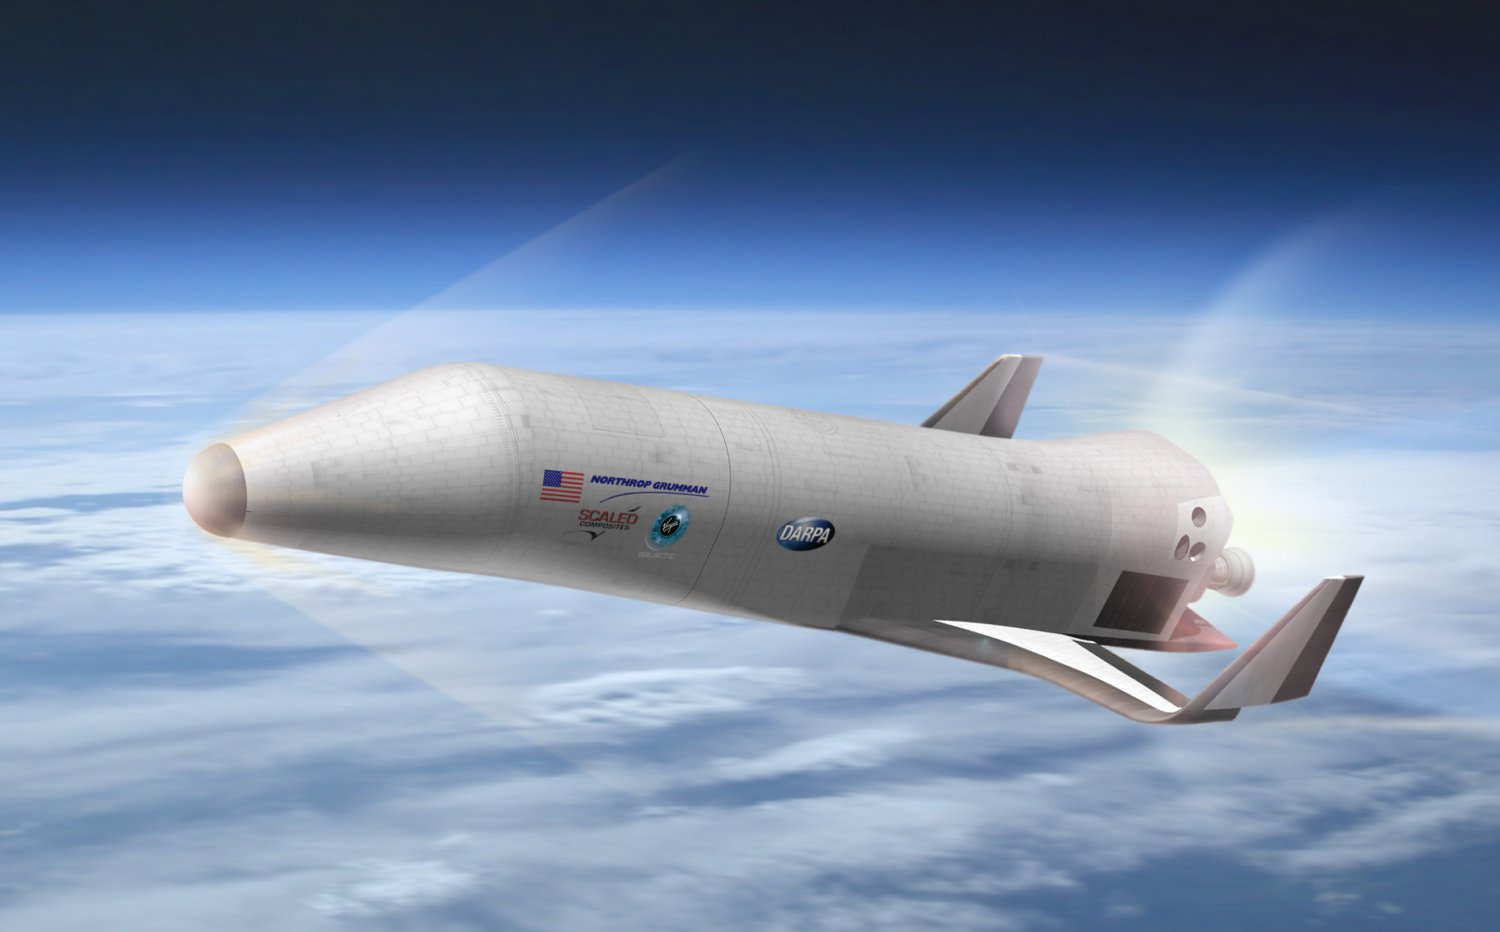 darpa projects spacecraft - photo #23